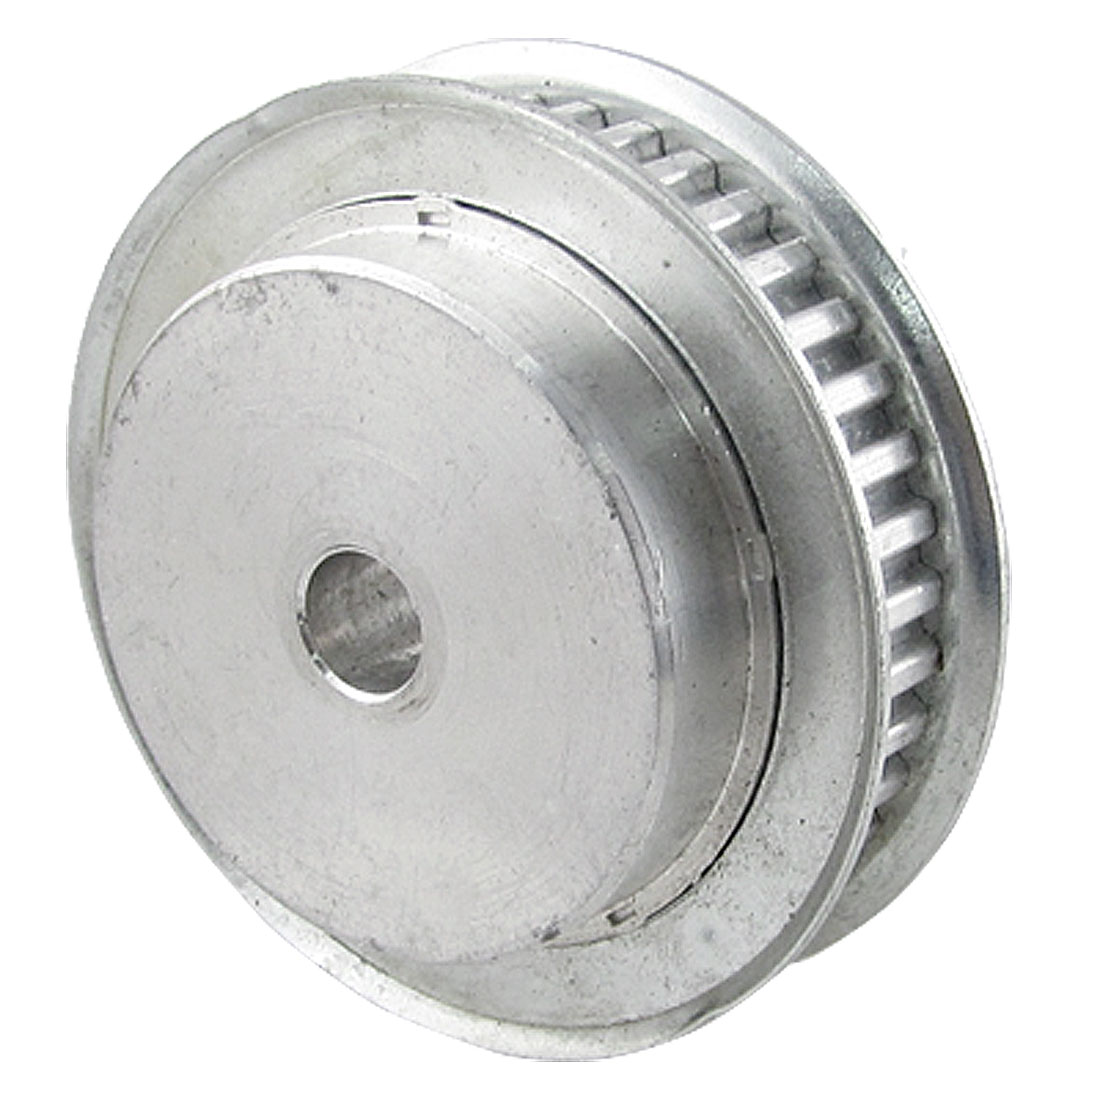 "XL Type Double Flange 0.43"" Width Belt 5mm Pitch 40 Teeth Timing Pulley"